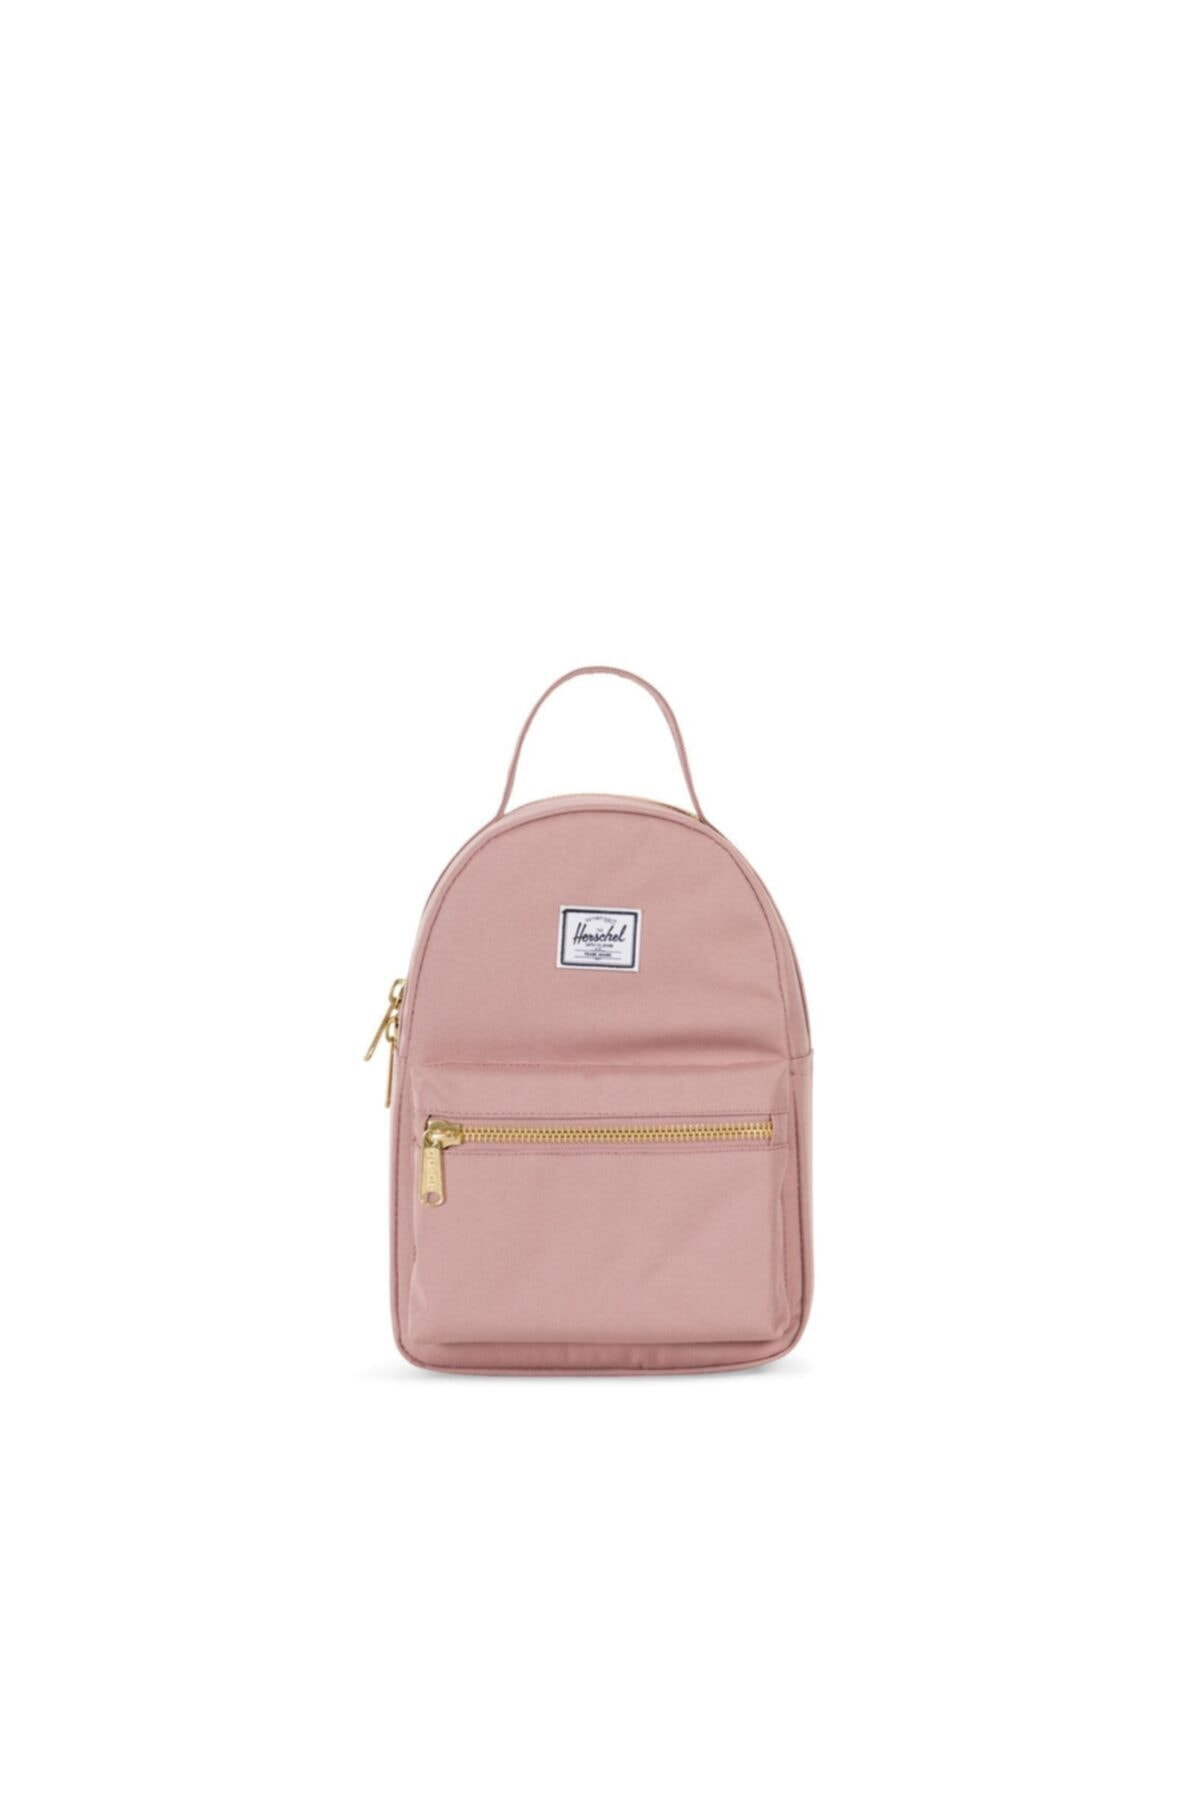 Herschel Supply Co. Unisex Pembe Sırt Çantası 1